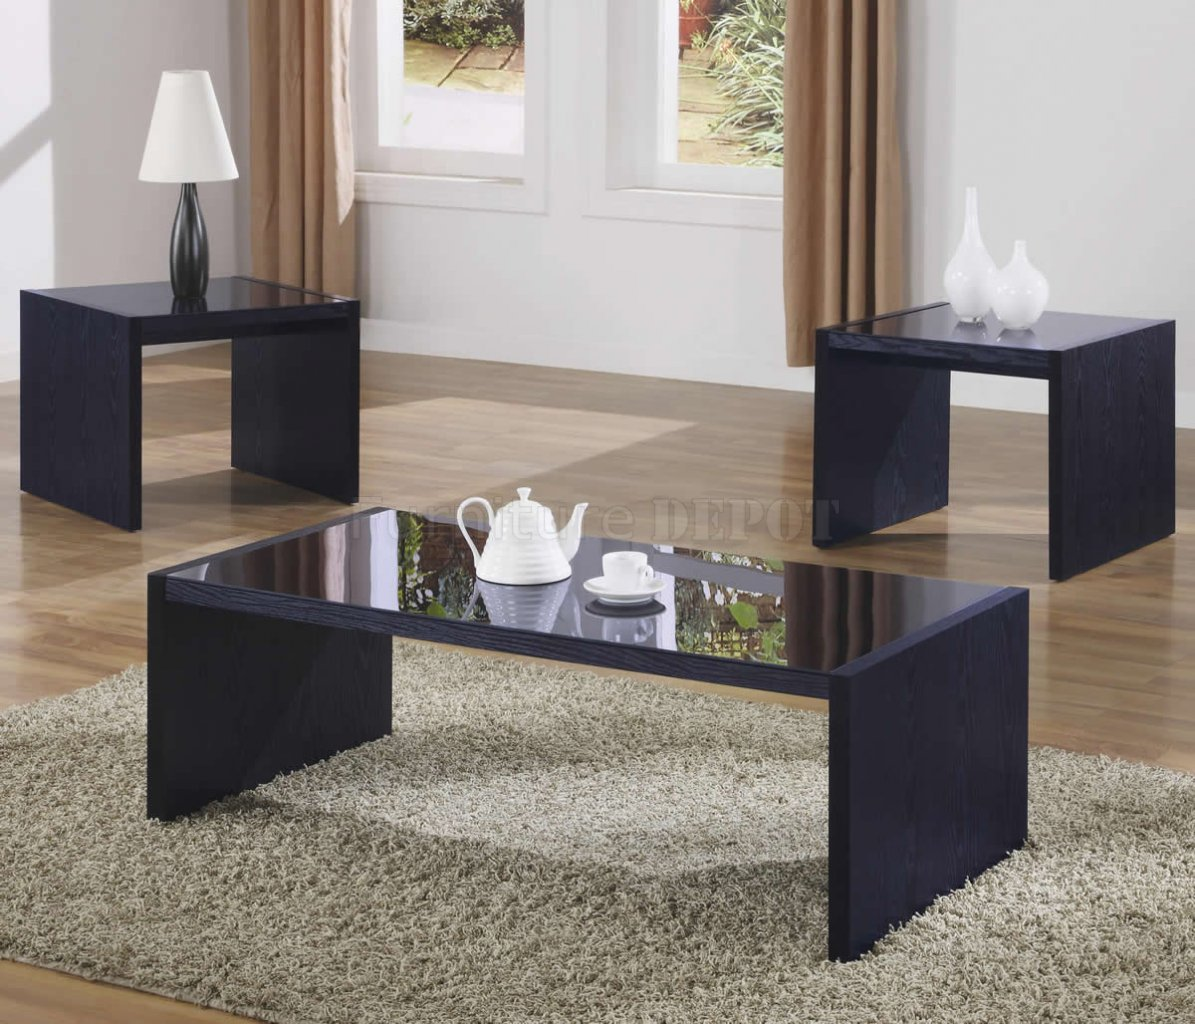 8 Best Glass Modern Coffee Table Sets For Decoration